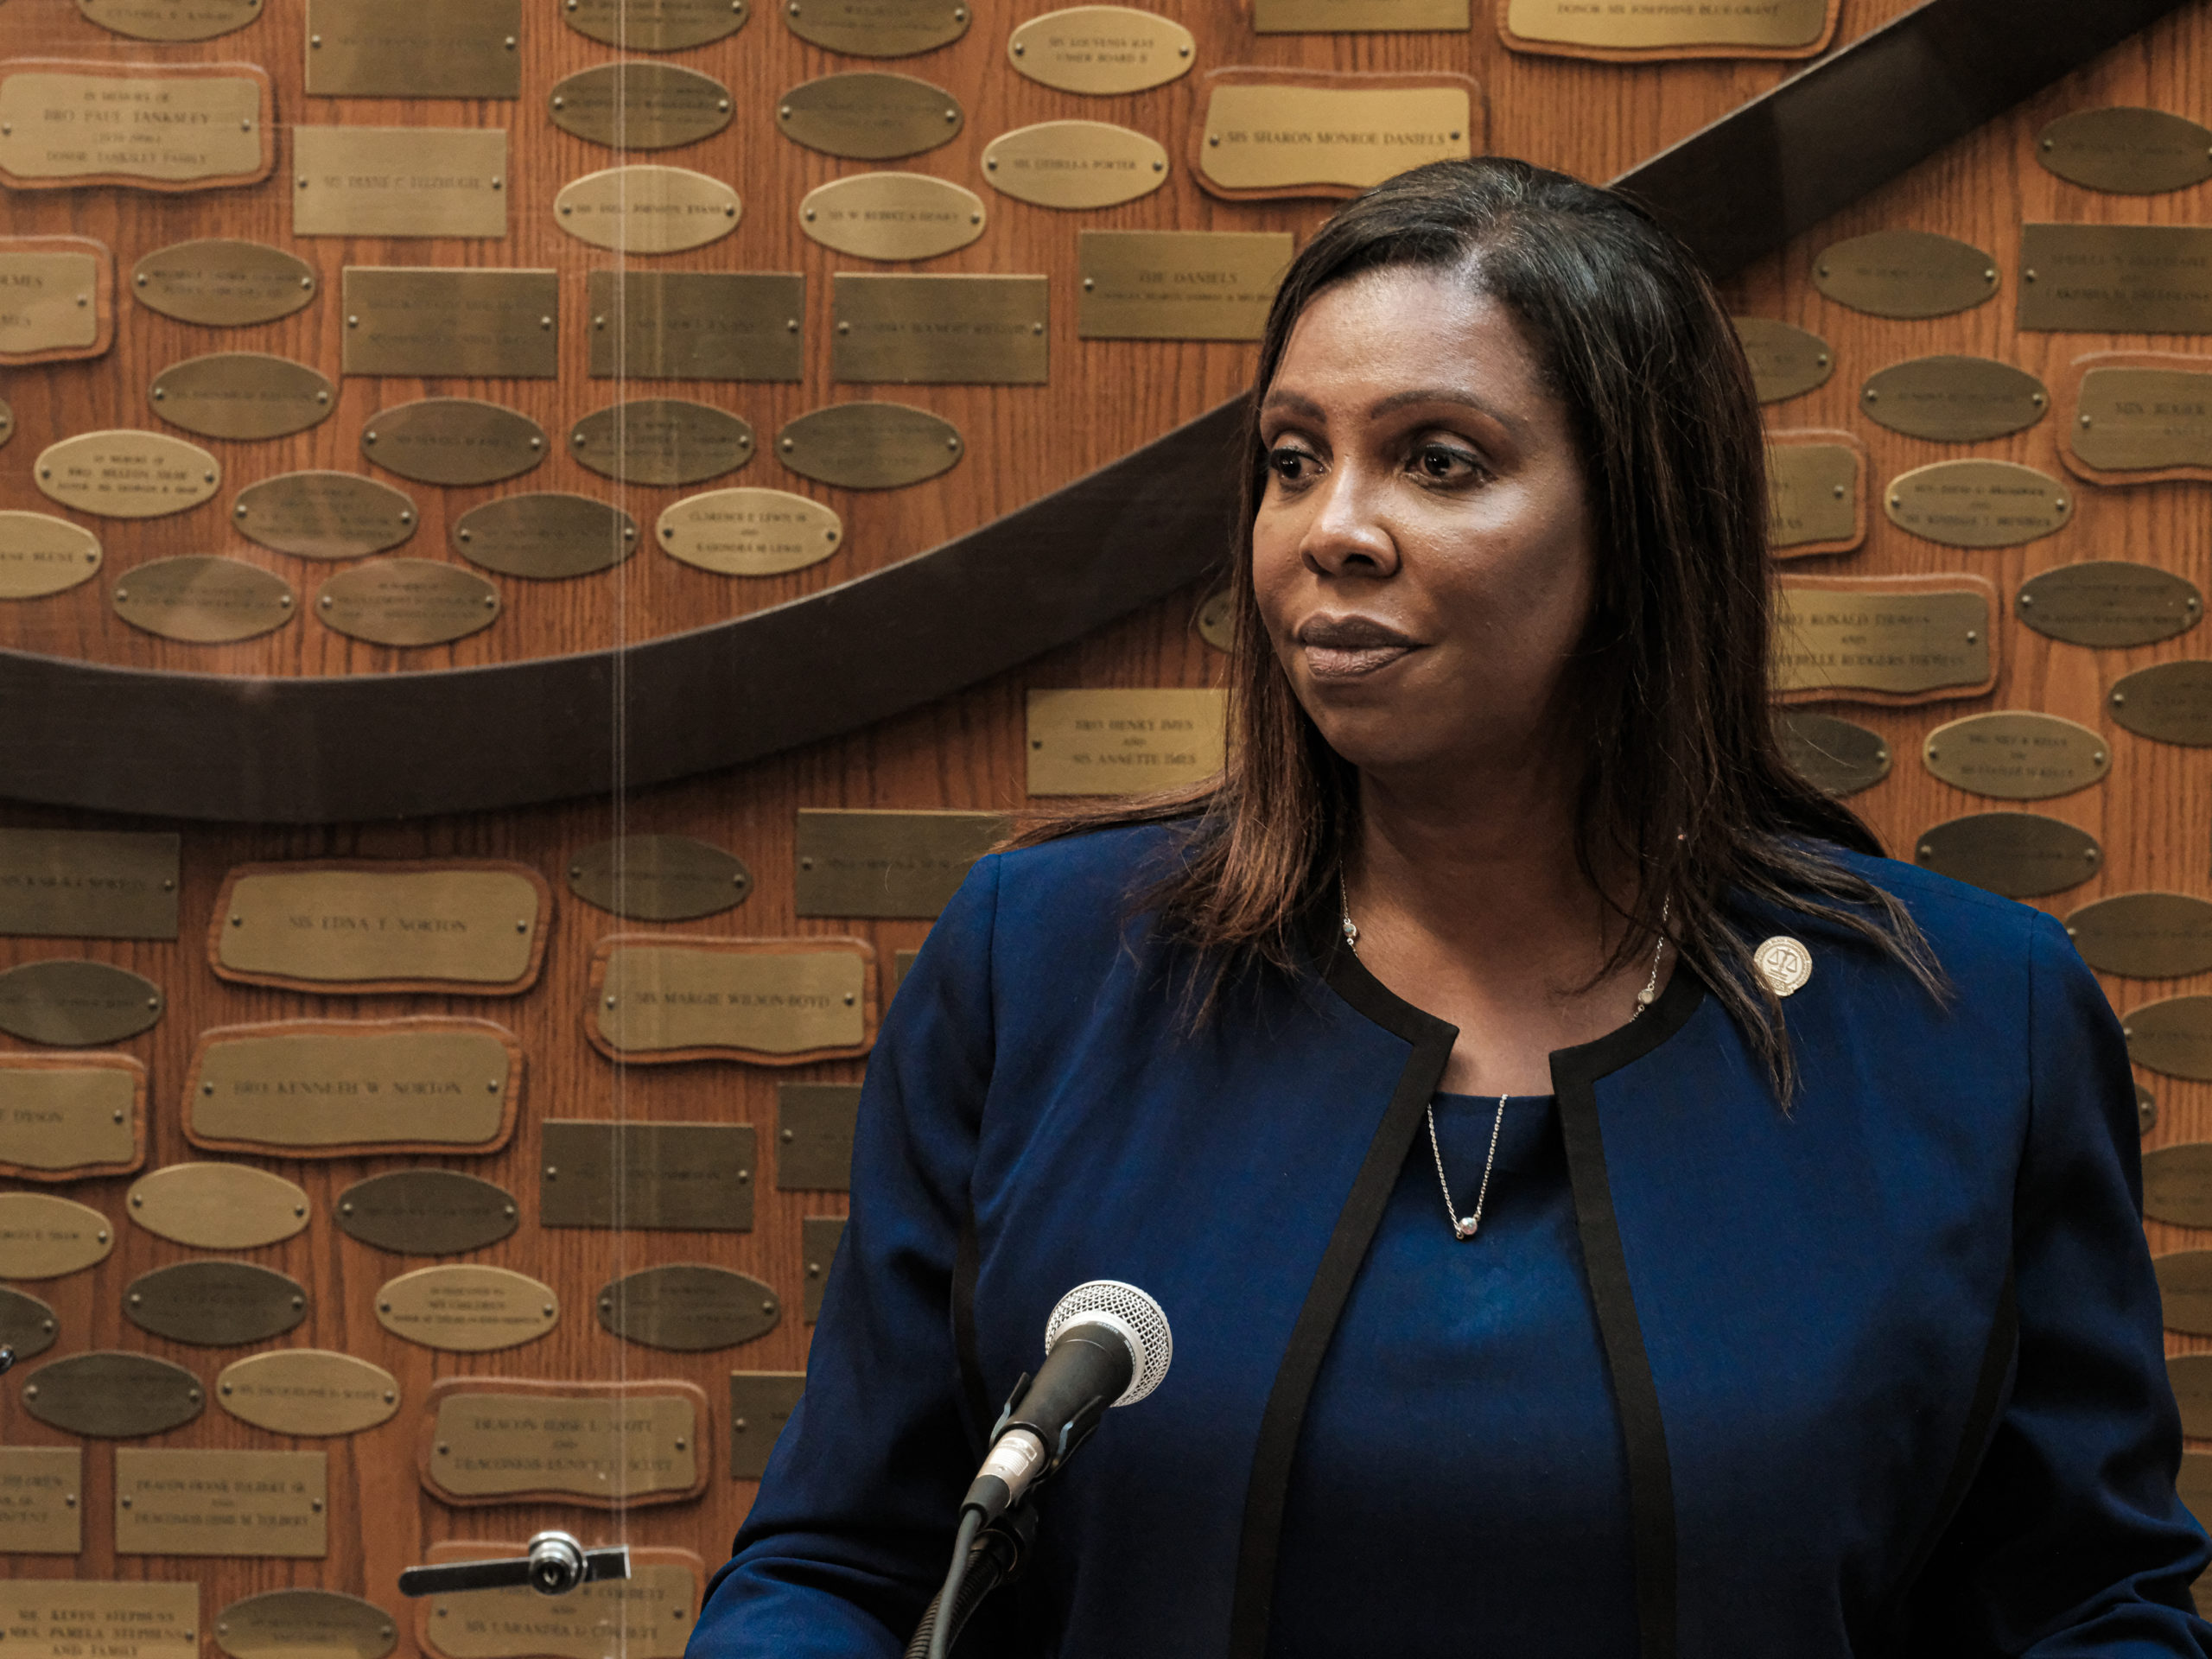 ROCHESTER, NY - SEPTEMBER 20: New York State Attorney General Letitia James speaks at a news conference about the ongoing investigation into the death of Daniel Prude on September 20, 2020 in Rochester, New York. Prude, who is Black, died March 30 after being taken off life support following his arrest by Rochester police. (Photo by Joshua Rashaad McFadden/Getty Images)